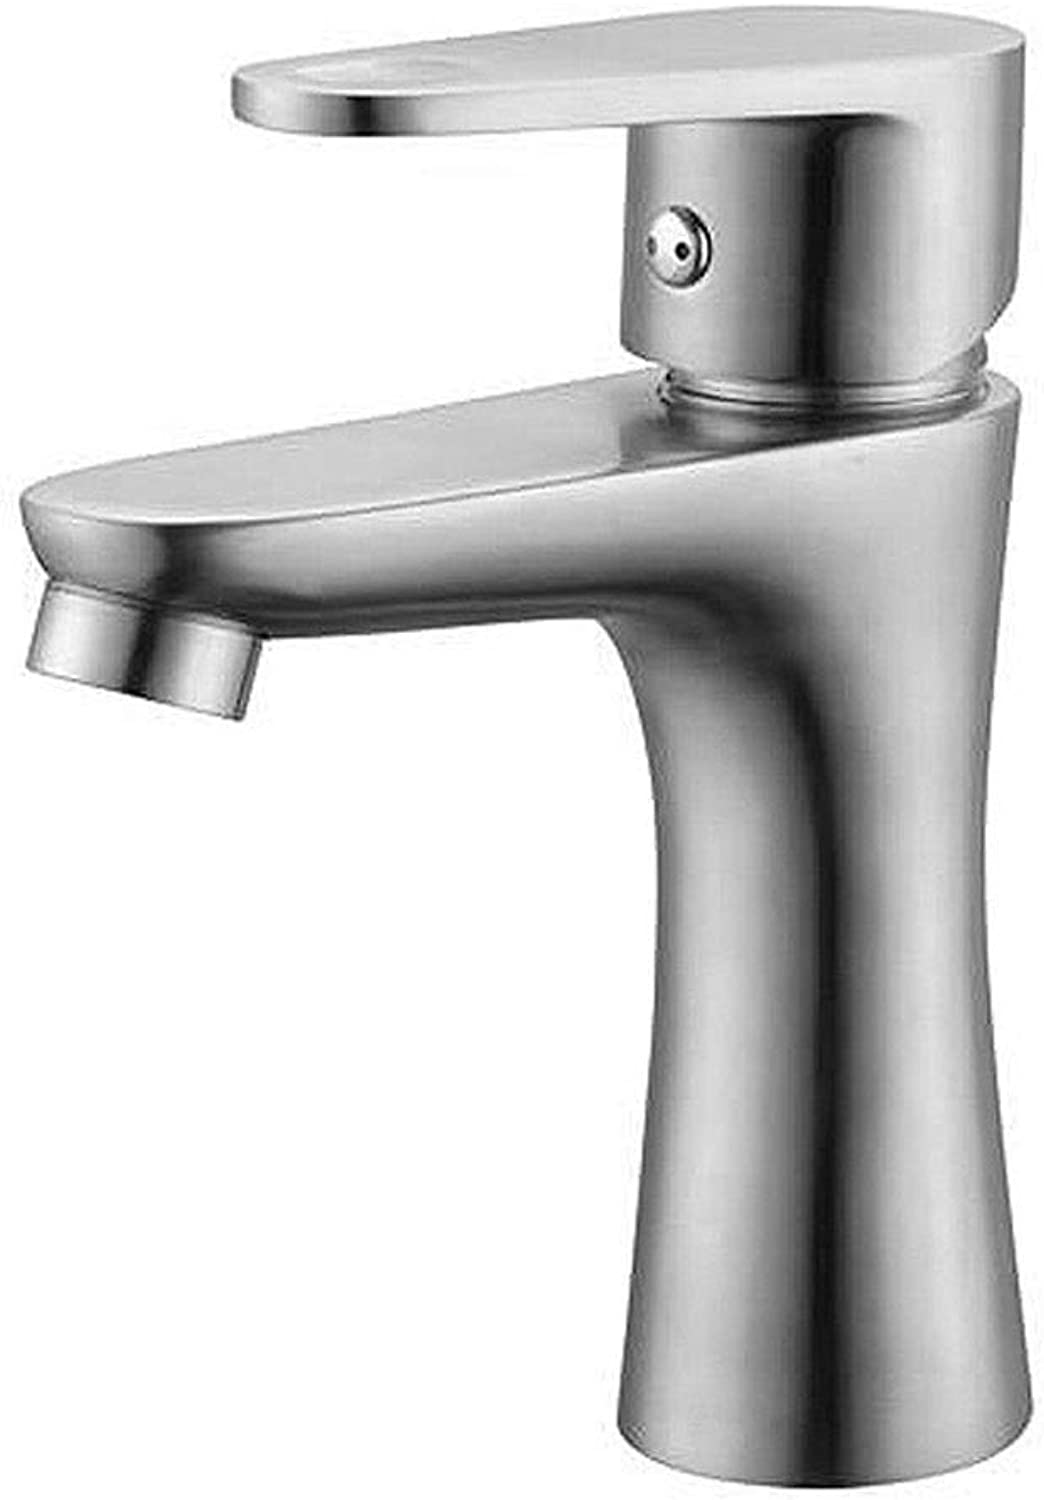 BHDYHM Modern Deck Mounted Nickel Brushed Ceramic Valve Bathroom Sink Faucet,Single Handle One Hole Out Kitchen Sink Faucets